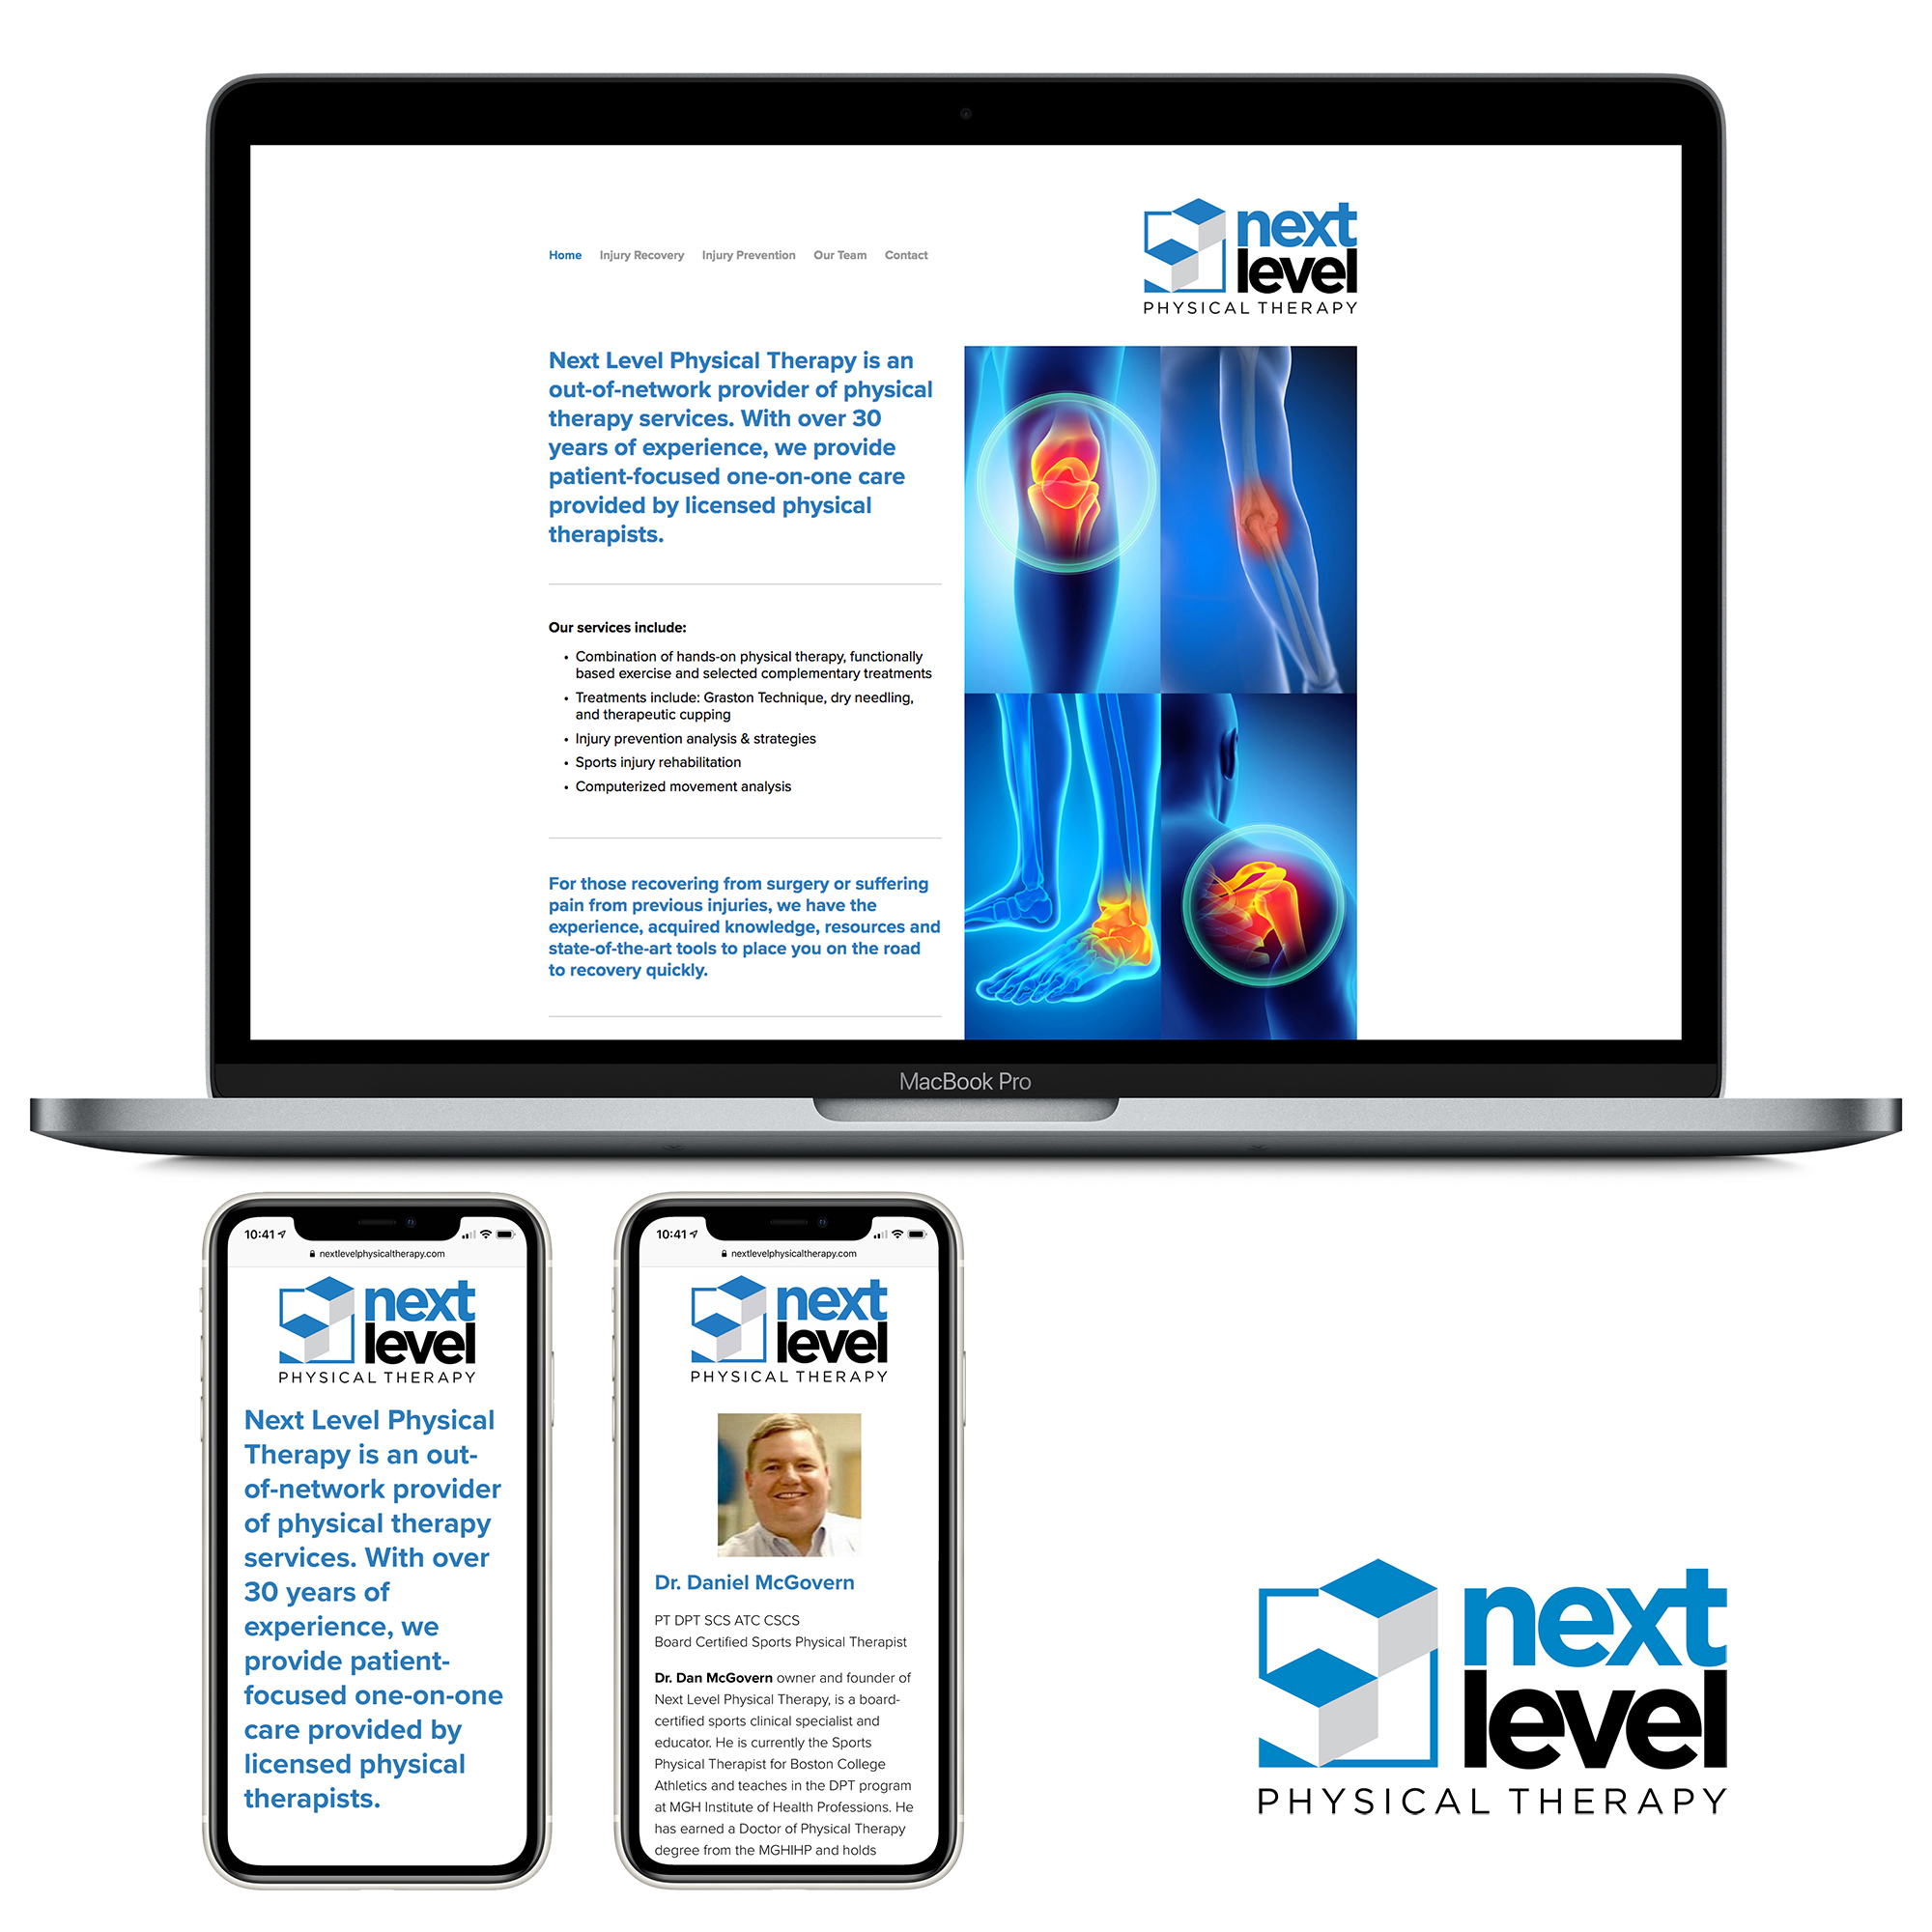 Next Level Physical Therapy's recently launched website